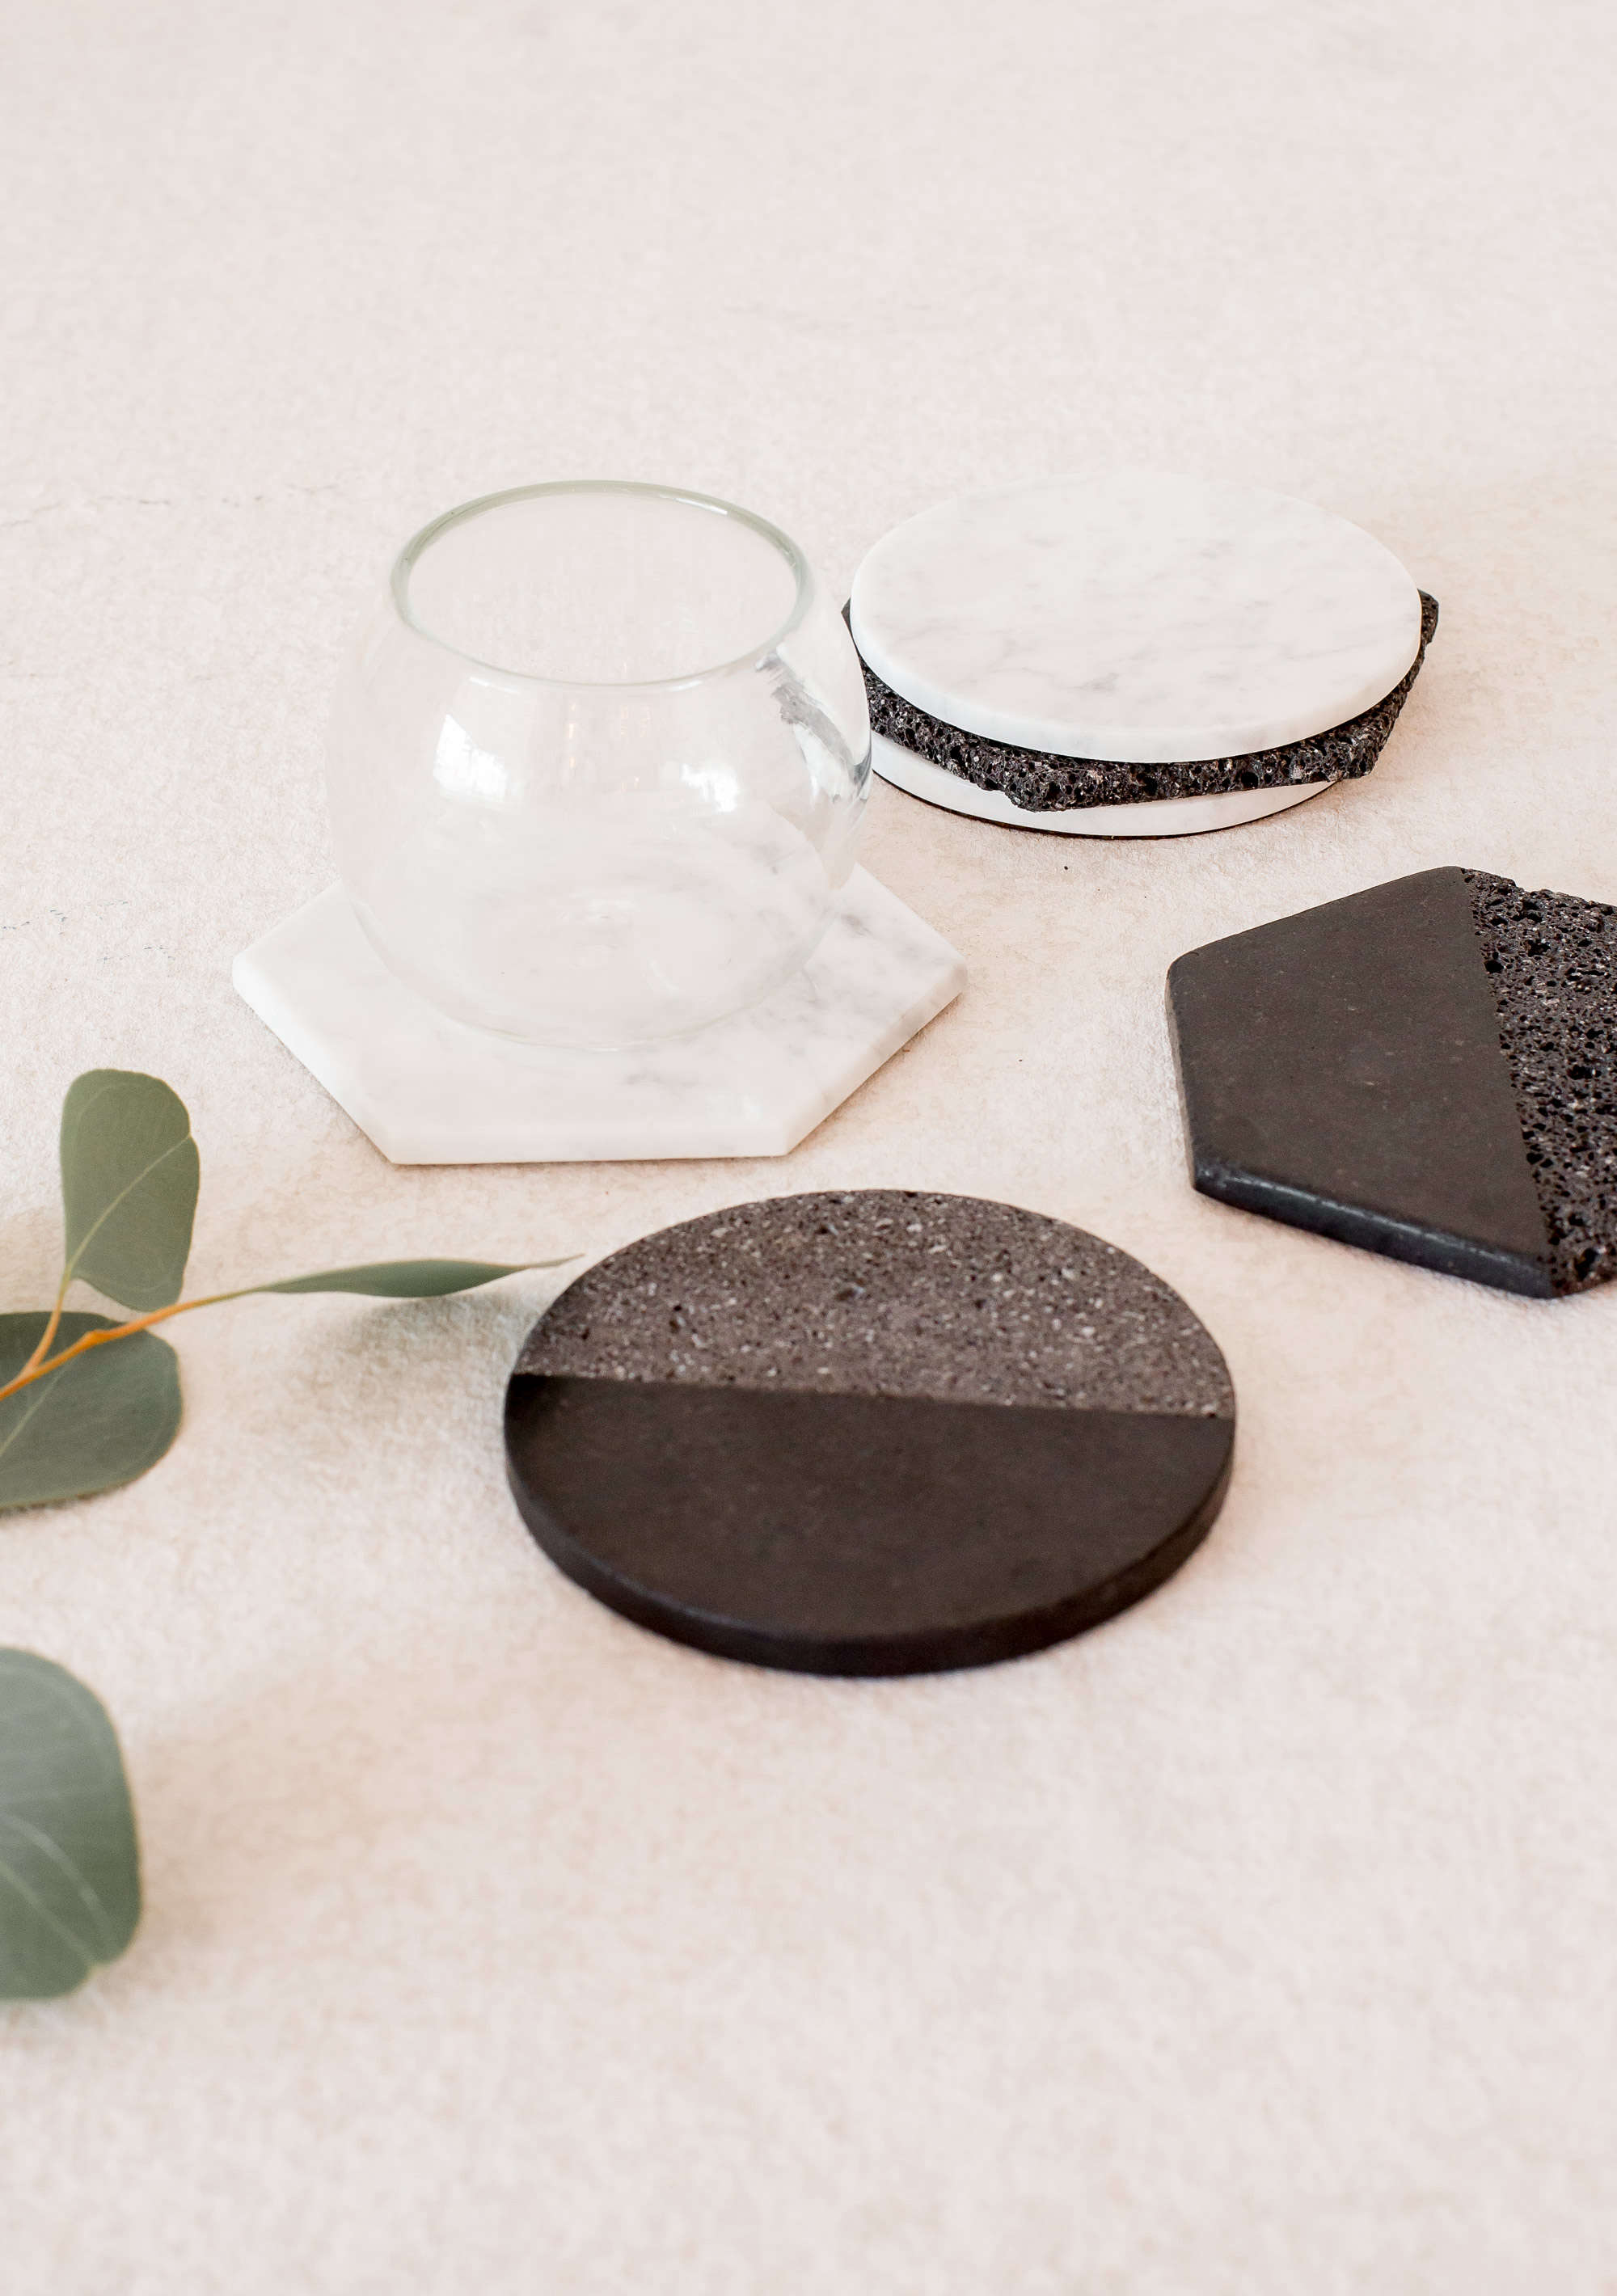 marble-volcanic-ash-coaster-from-the-citizenry